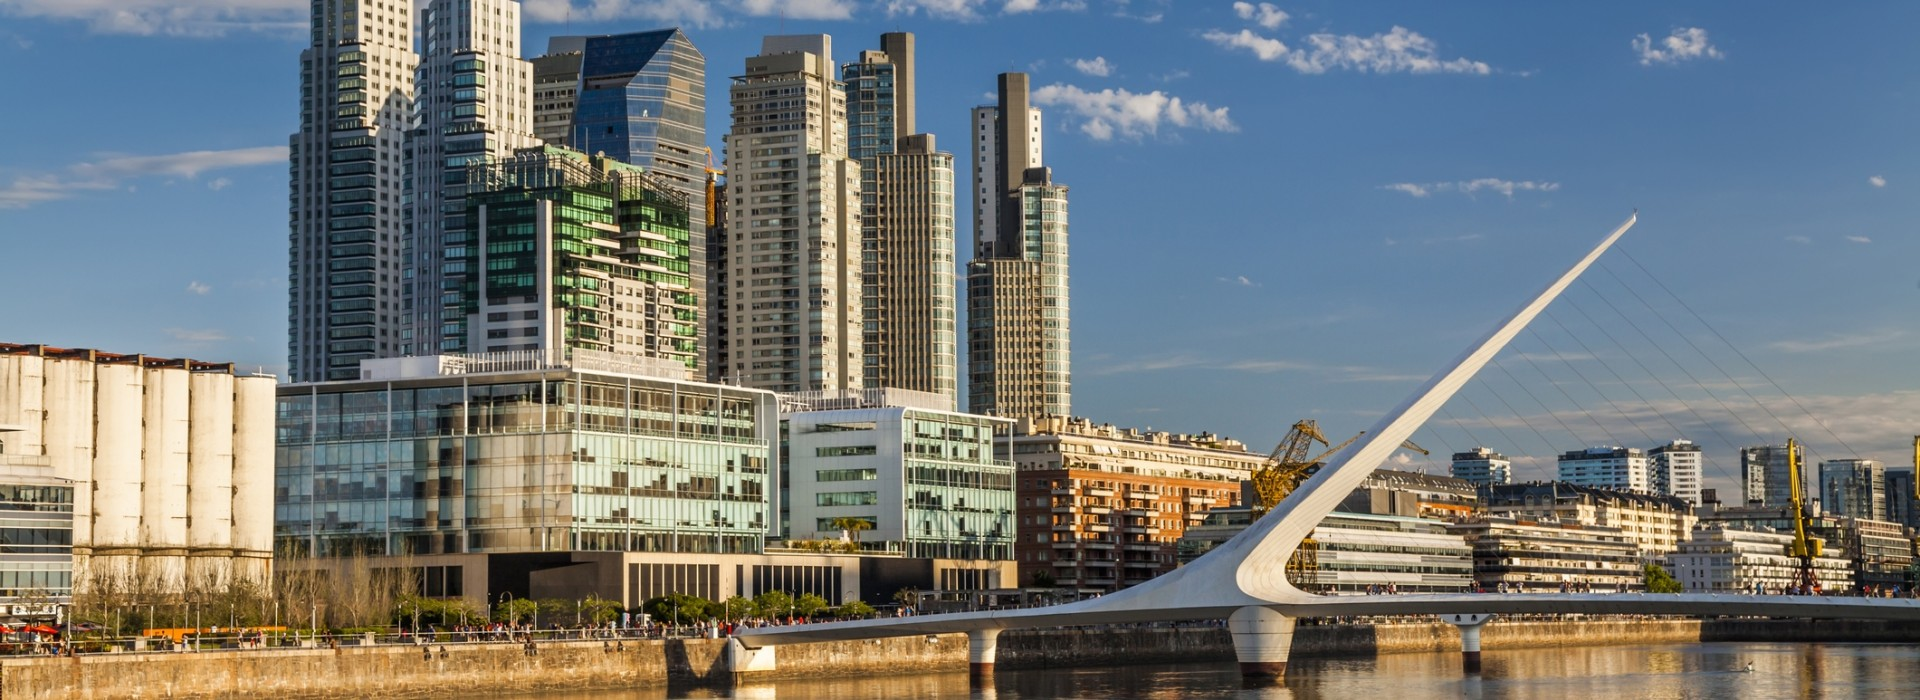 Buenos Aires Tours and Holidays 2019/2020